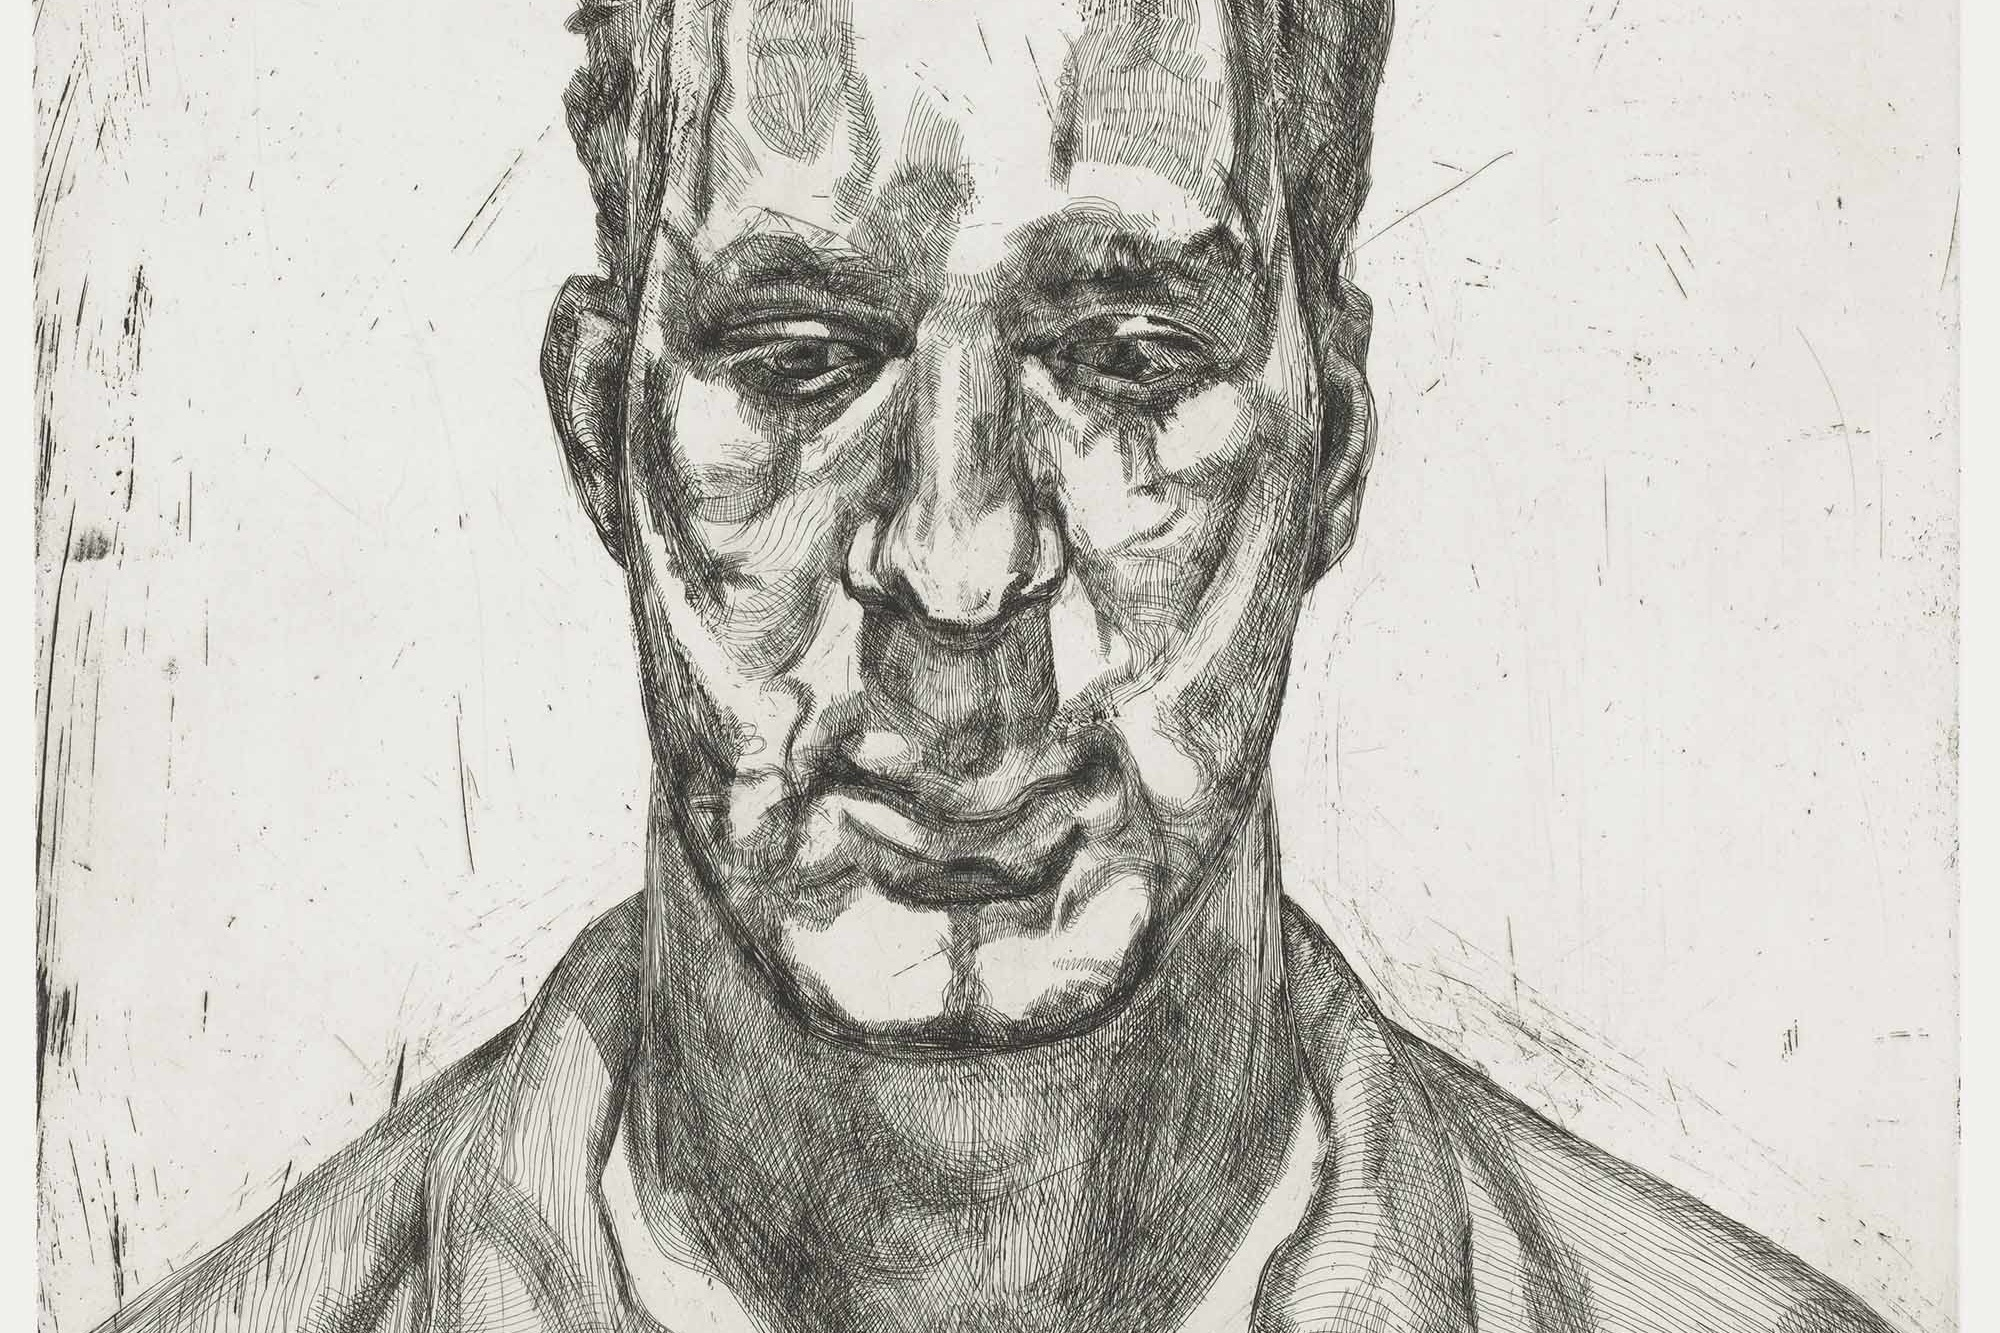 Lucian Freud. Kai. 1991–92. Sheet: 31 × 24 9/16″ (78.7 × 62.4 cm). Publisher: Matthew Marks Gallery, New York. Printer: Marc Balakjian at Studio Prints, London. Edition: 40. Courtesy Matthew Marks Gallery, New York. © 2008 Lucian Freud